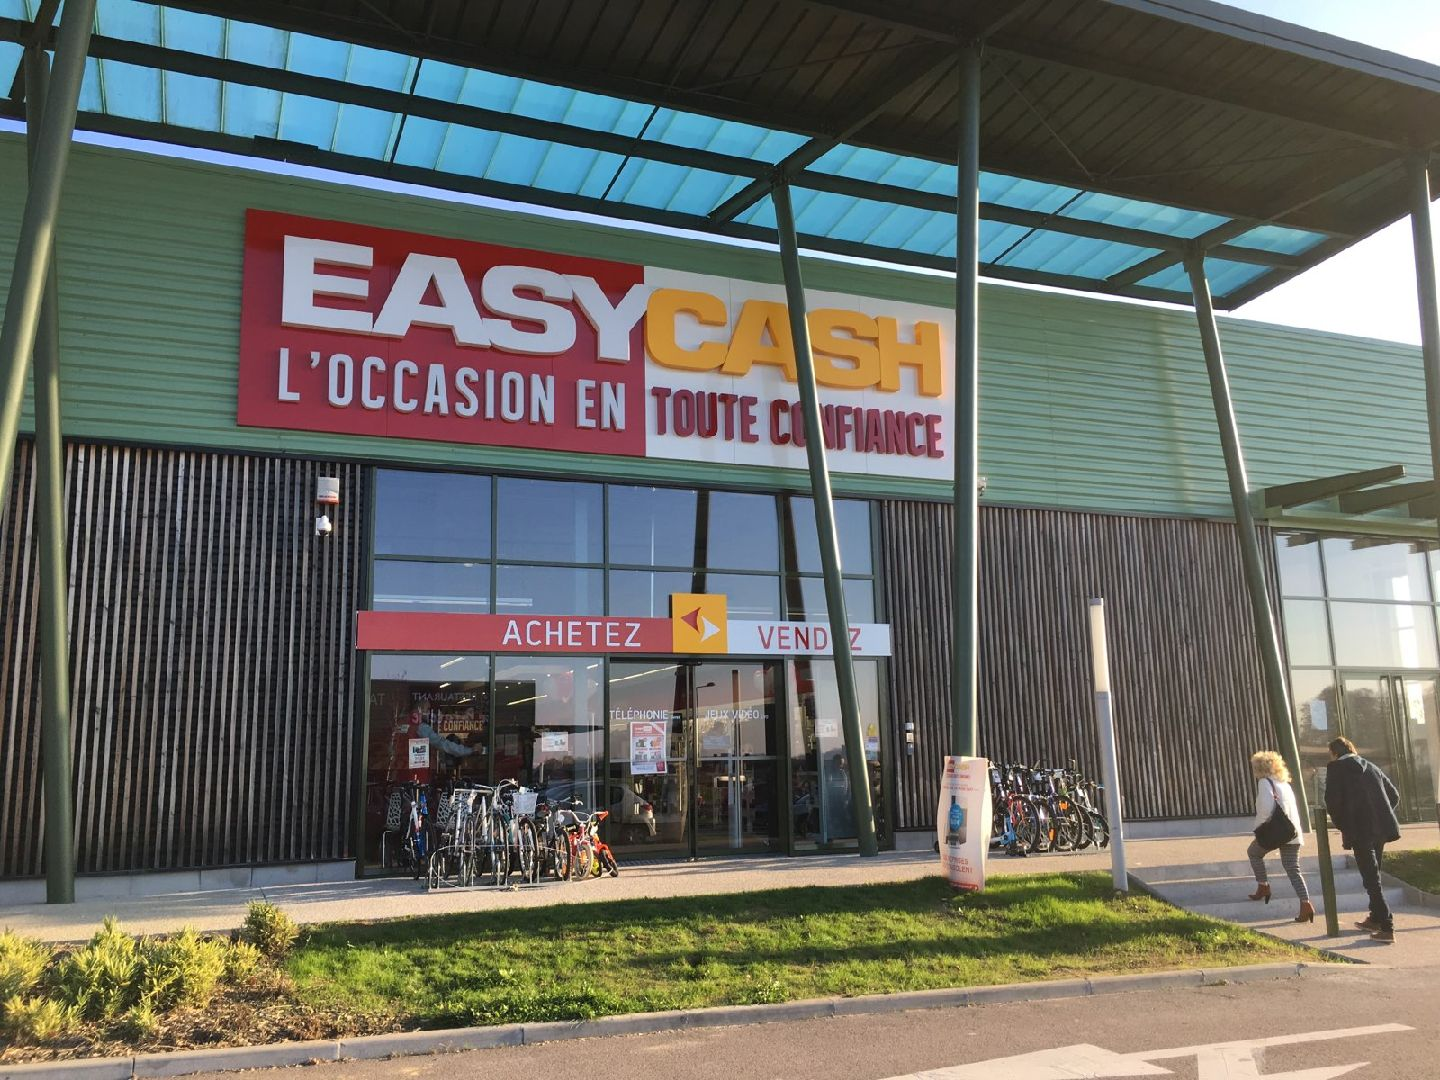 Magasin De Bricolage Rouen Easy Cash Rouen Barentin Les Occasions Easy Cash Bons Plans